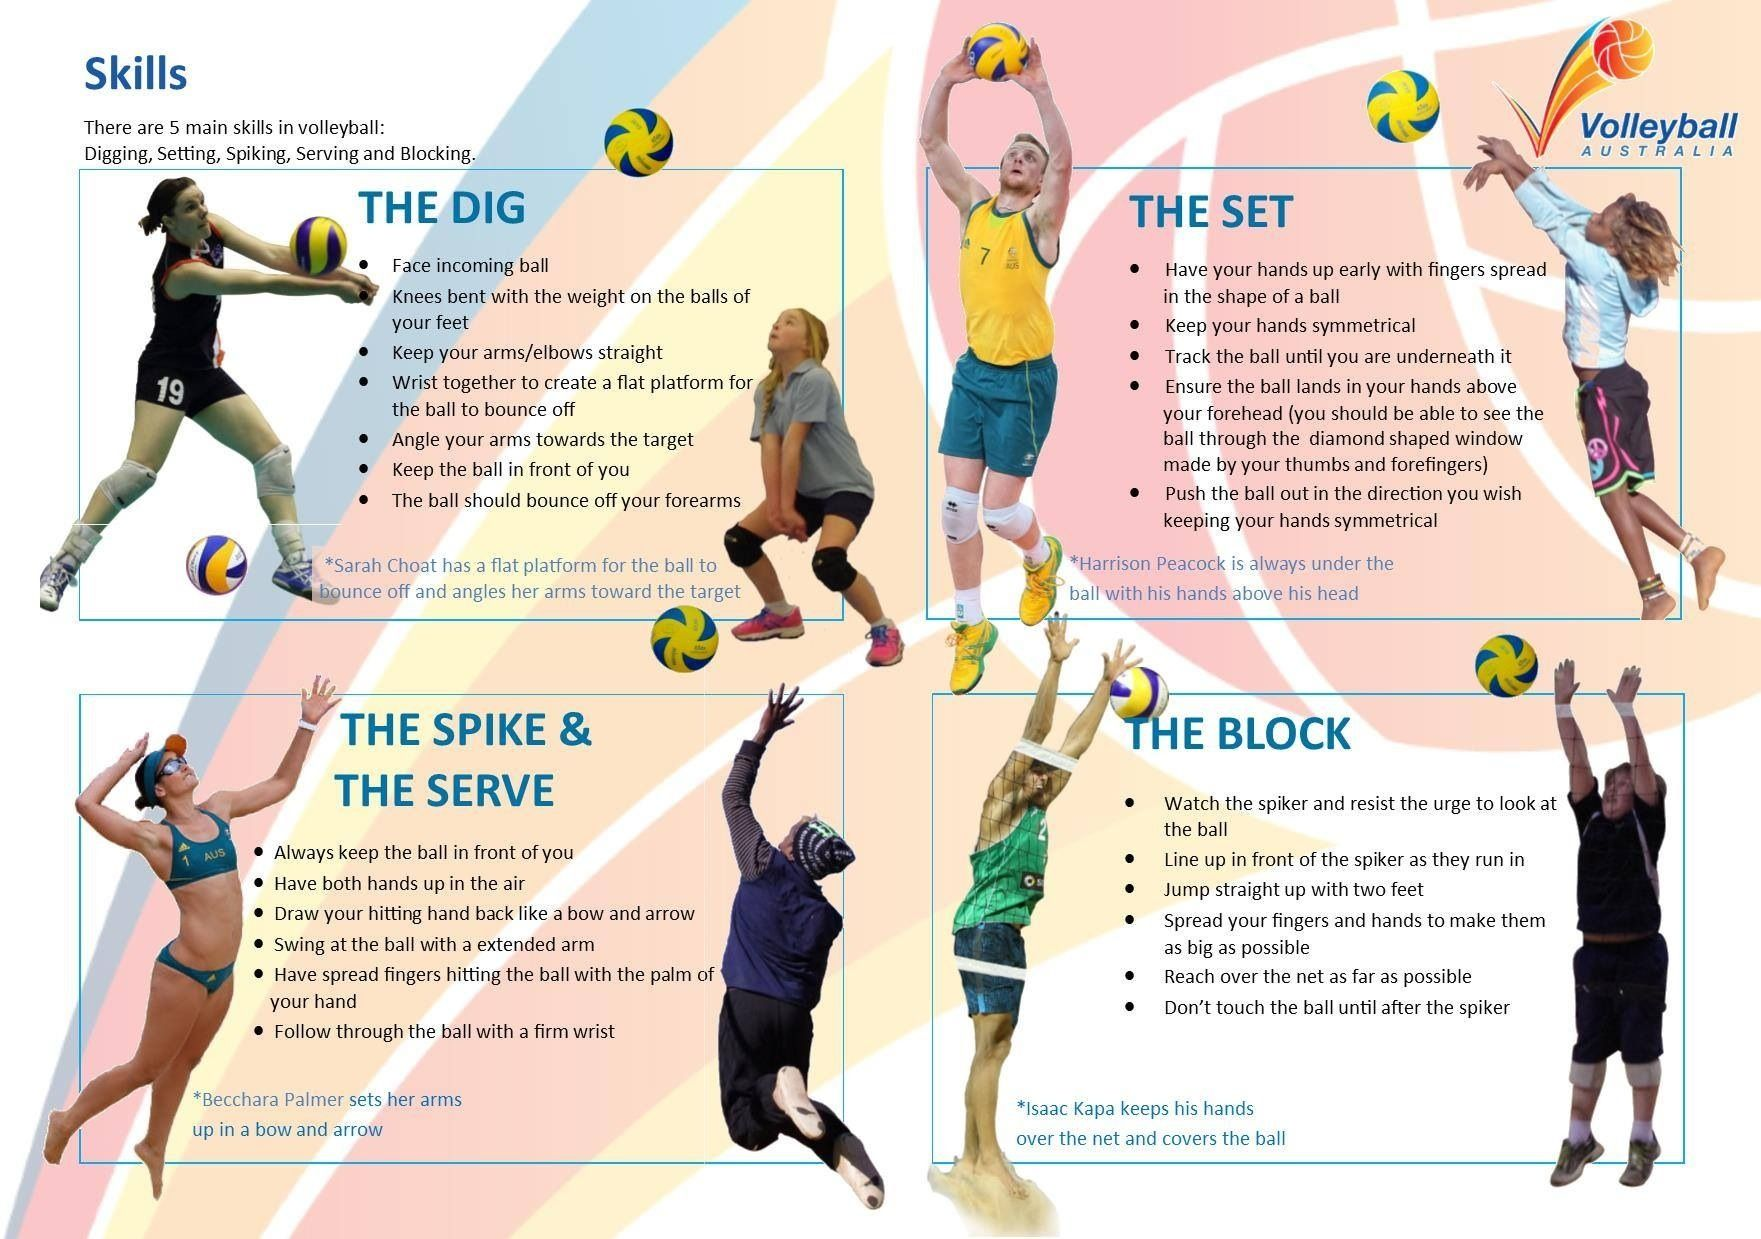 Volleyball Skills Volleyball Skills Model Provided By Volleyball Australia Volleyballskilldefinitio Volleyball Skills Volleyball Tryouts Coaching Volleyball